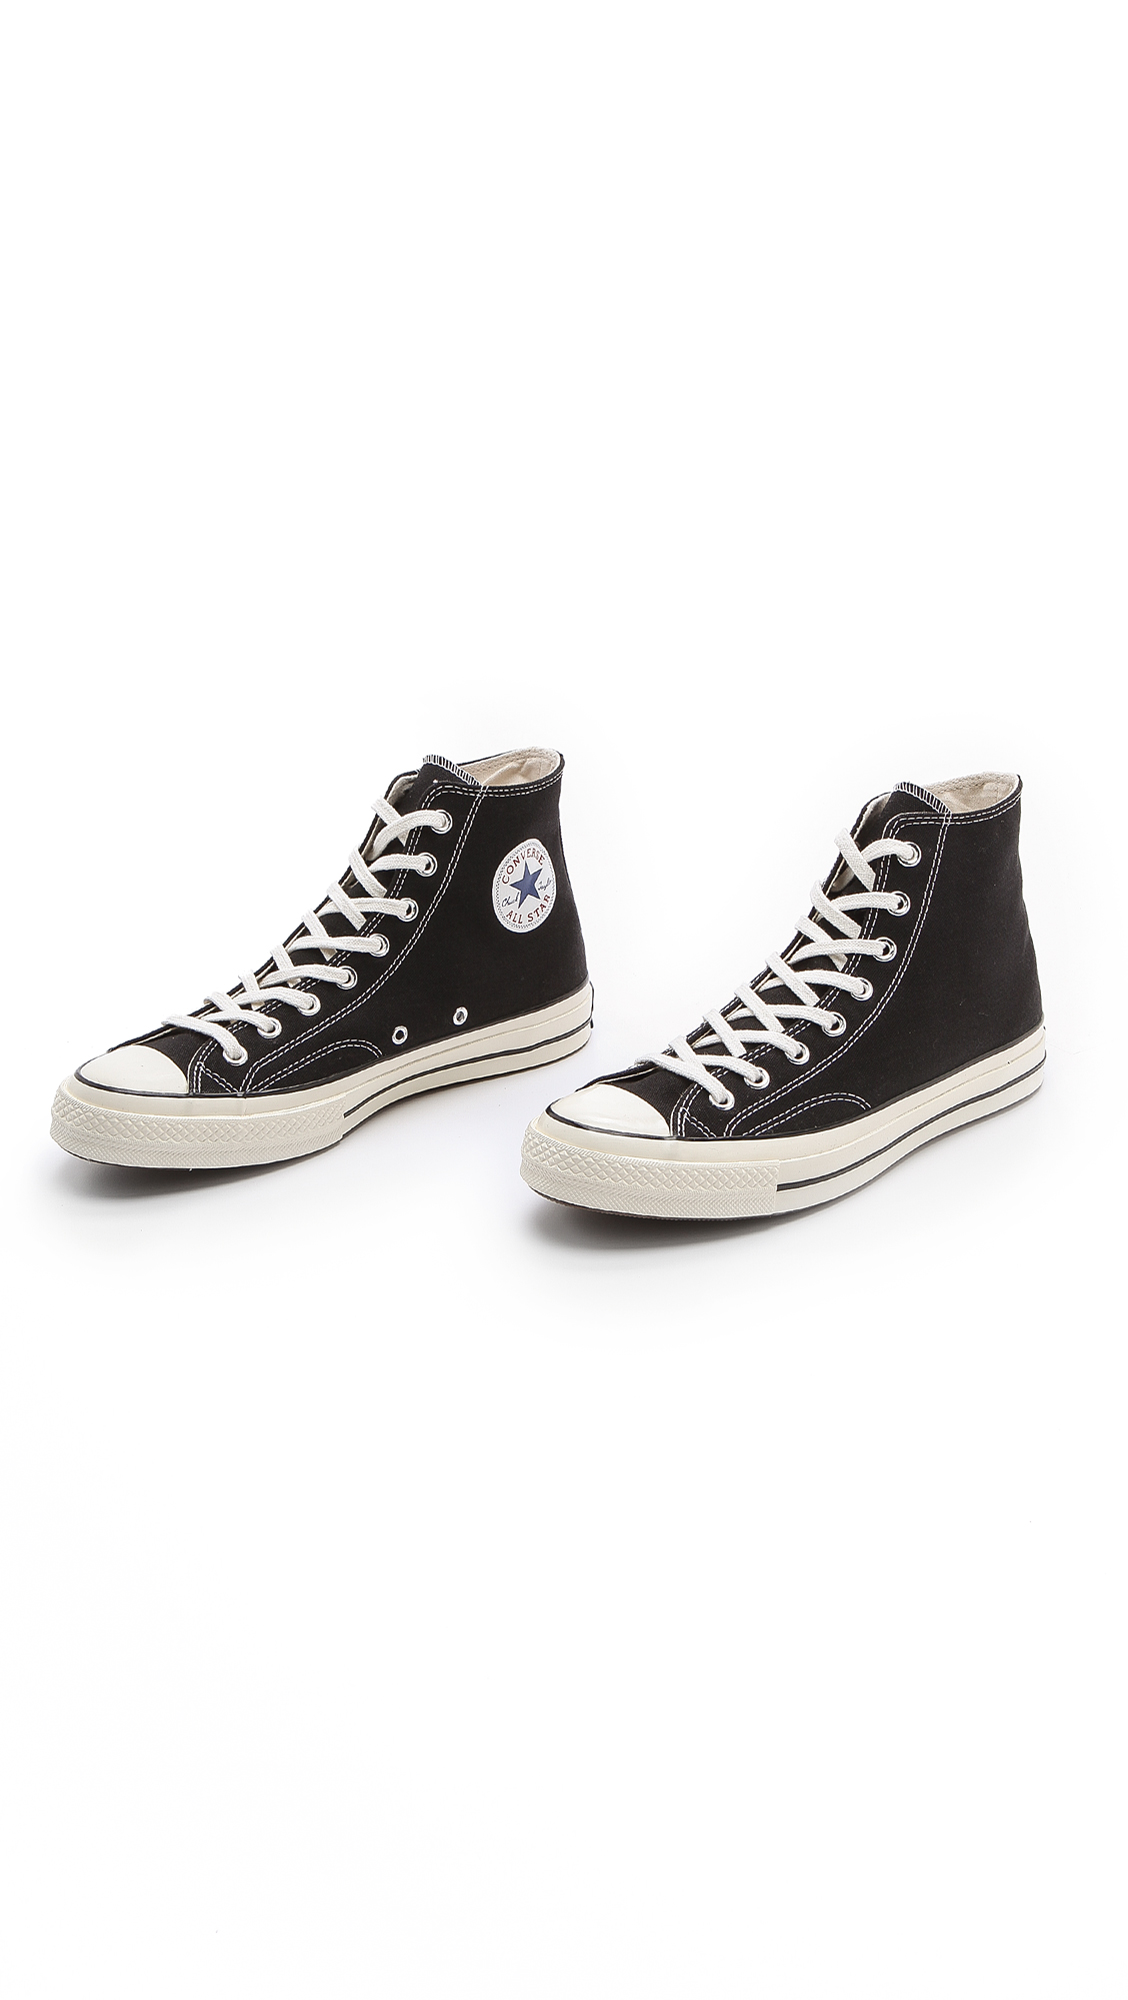 ee2821c0573 Converse Chuck Taylor All Star  70s High Top Sneakers